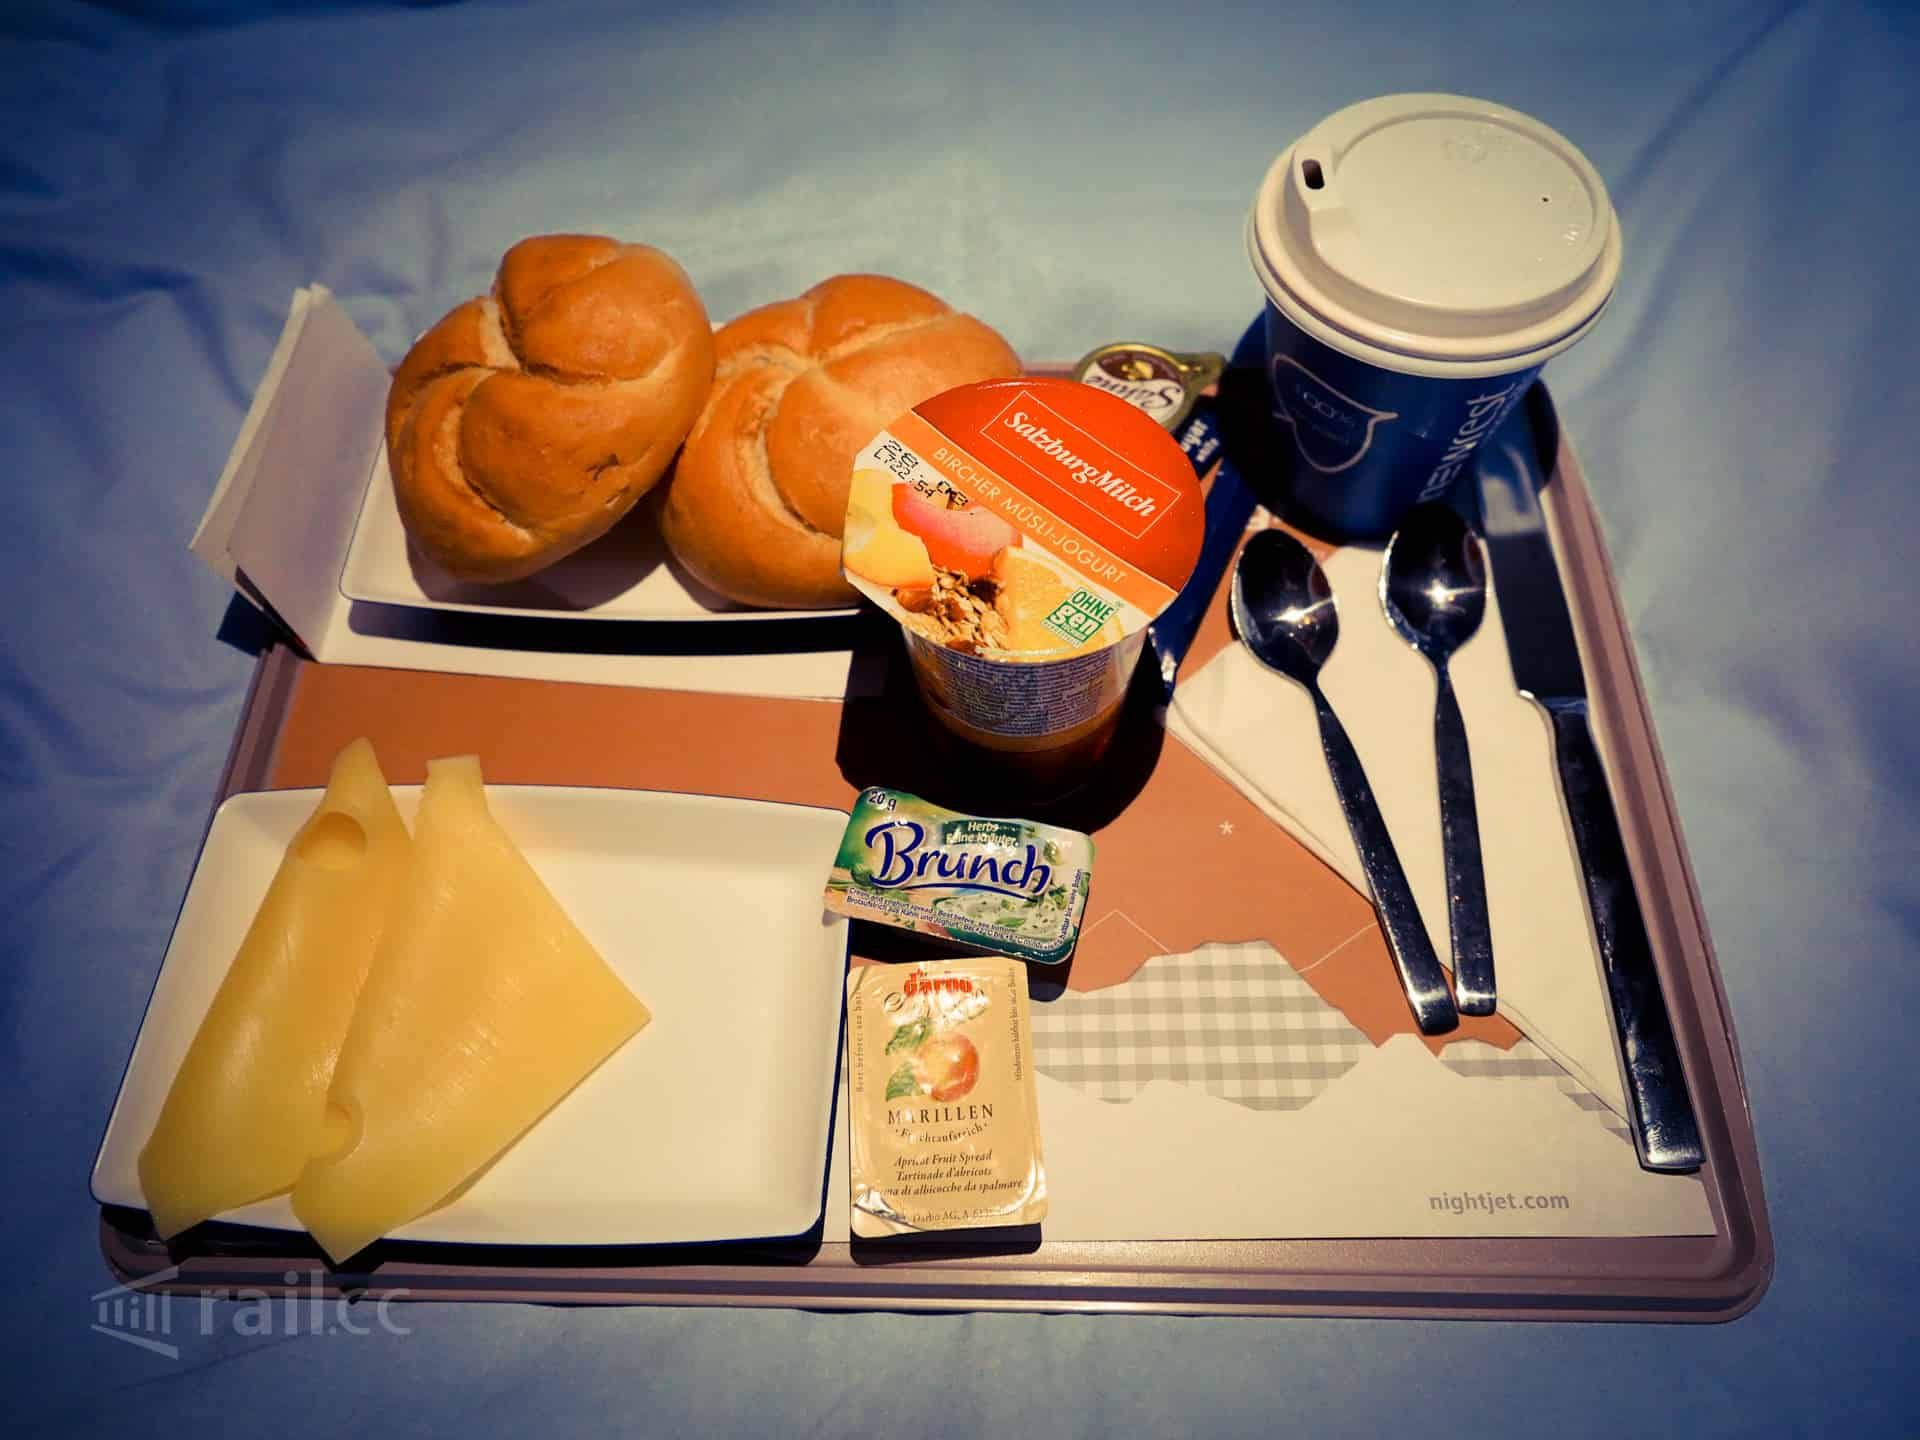 Nightjet sleeper breakfast